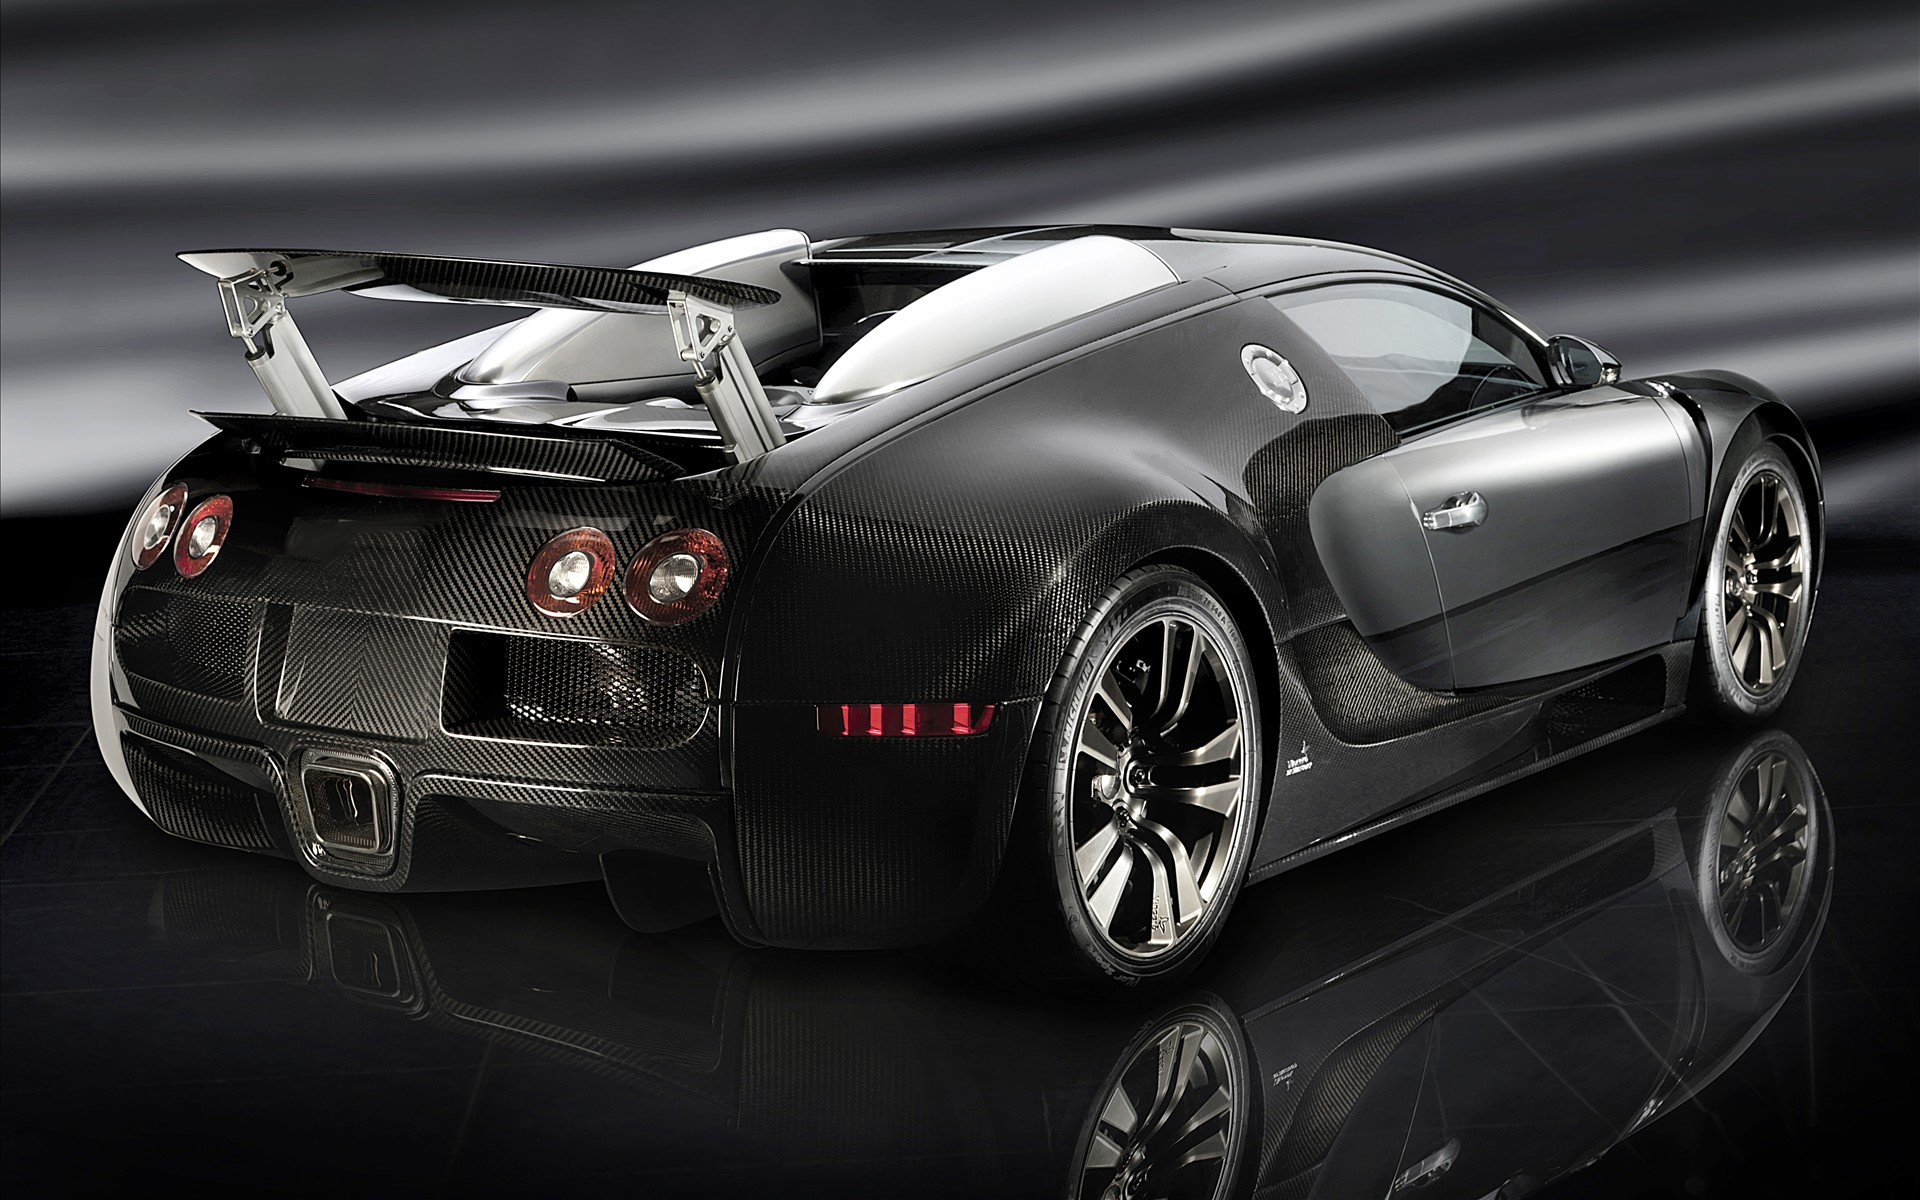 Black Bugatti Veyron 16.4 HD Wallpaper Desktop Download Wallpaper